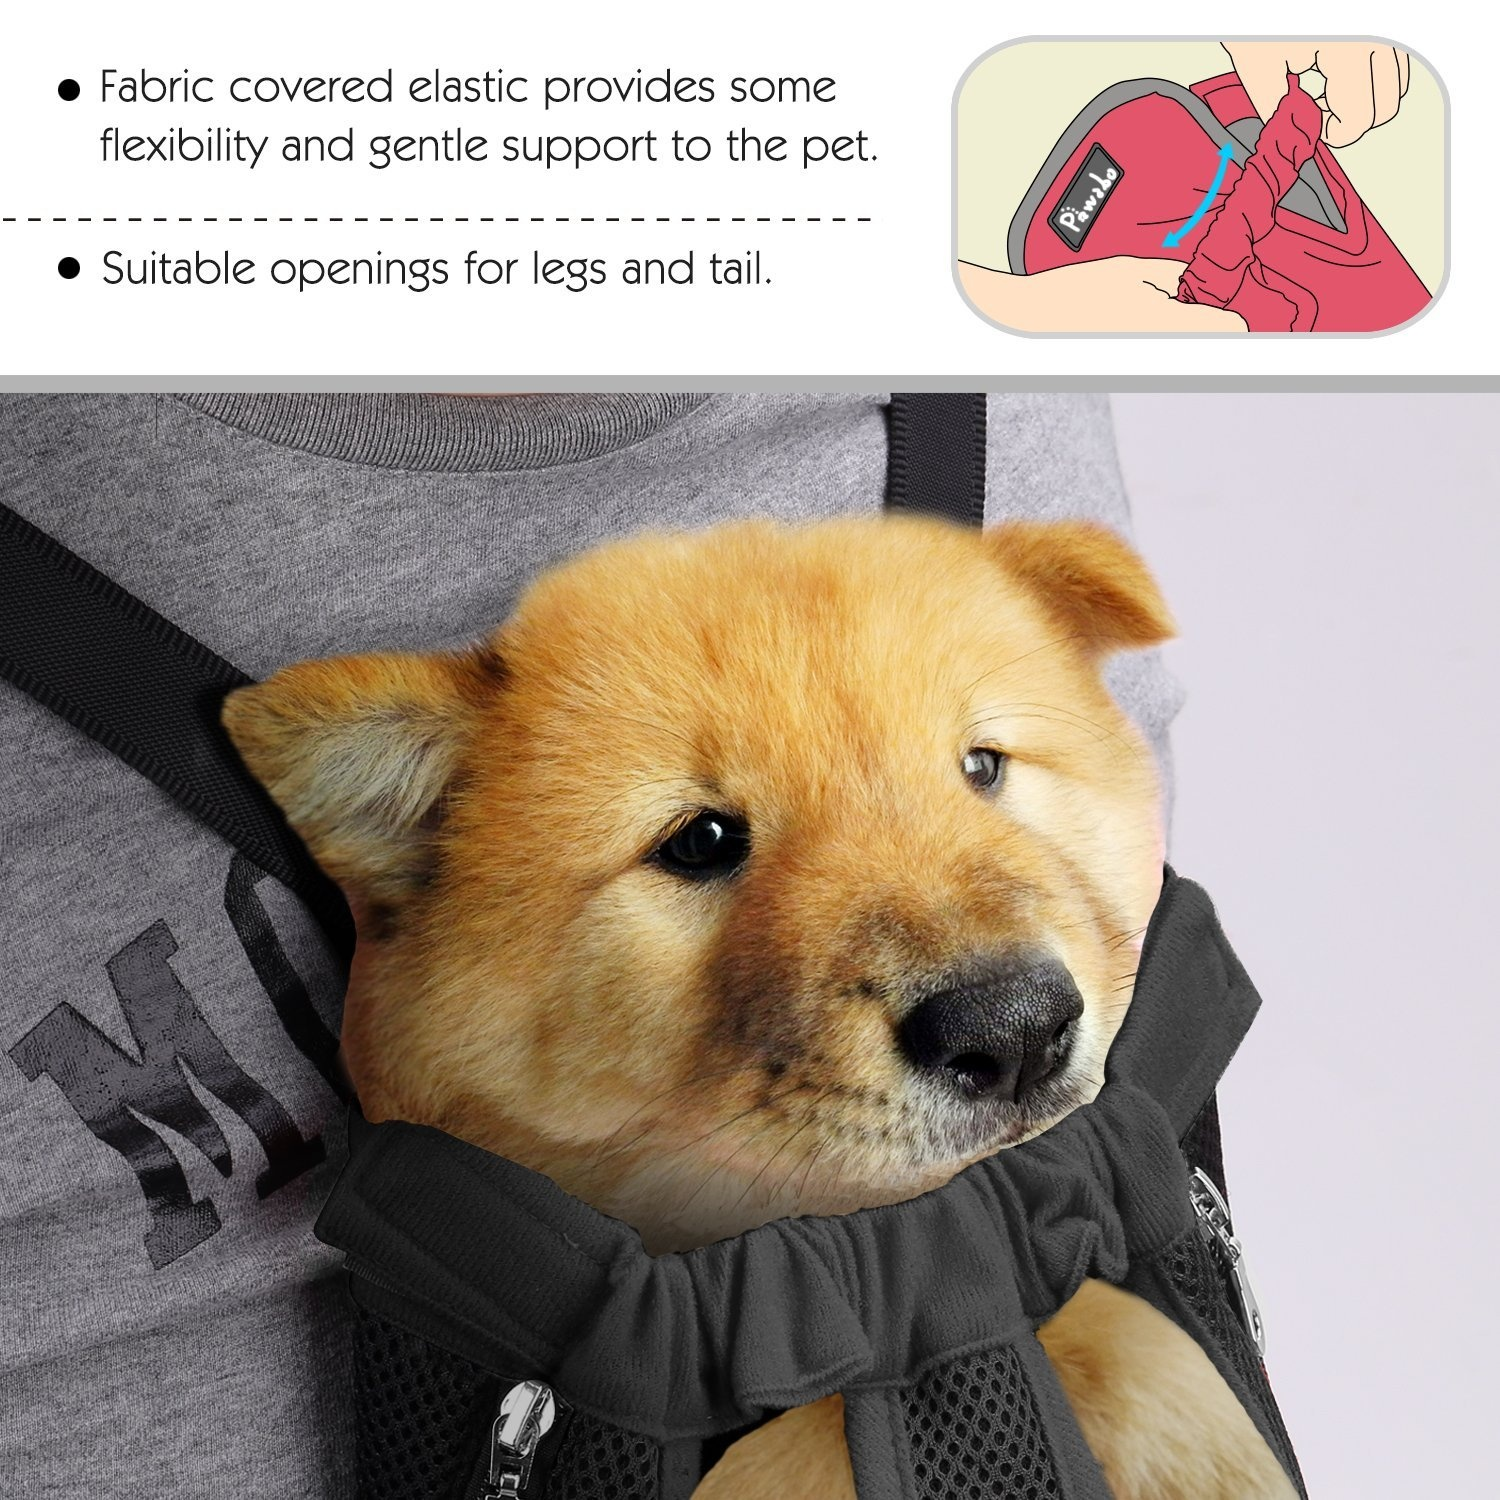 Pawaboo Pet Carrier Backpack Adjustable Pet Front Cat Dog Carrier Backpack Travel Bag Easy-Fit for Traveling Hiking Camping for Small Medium Dogs ORANGE Legs Out Large Size